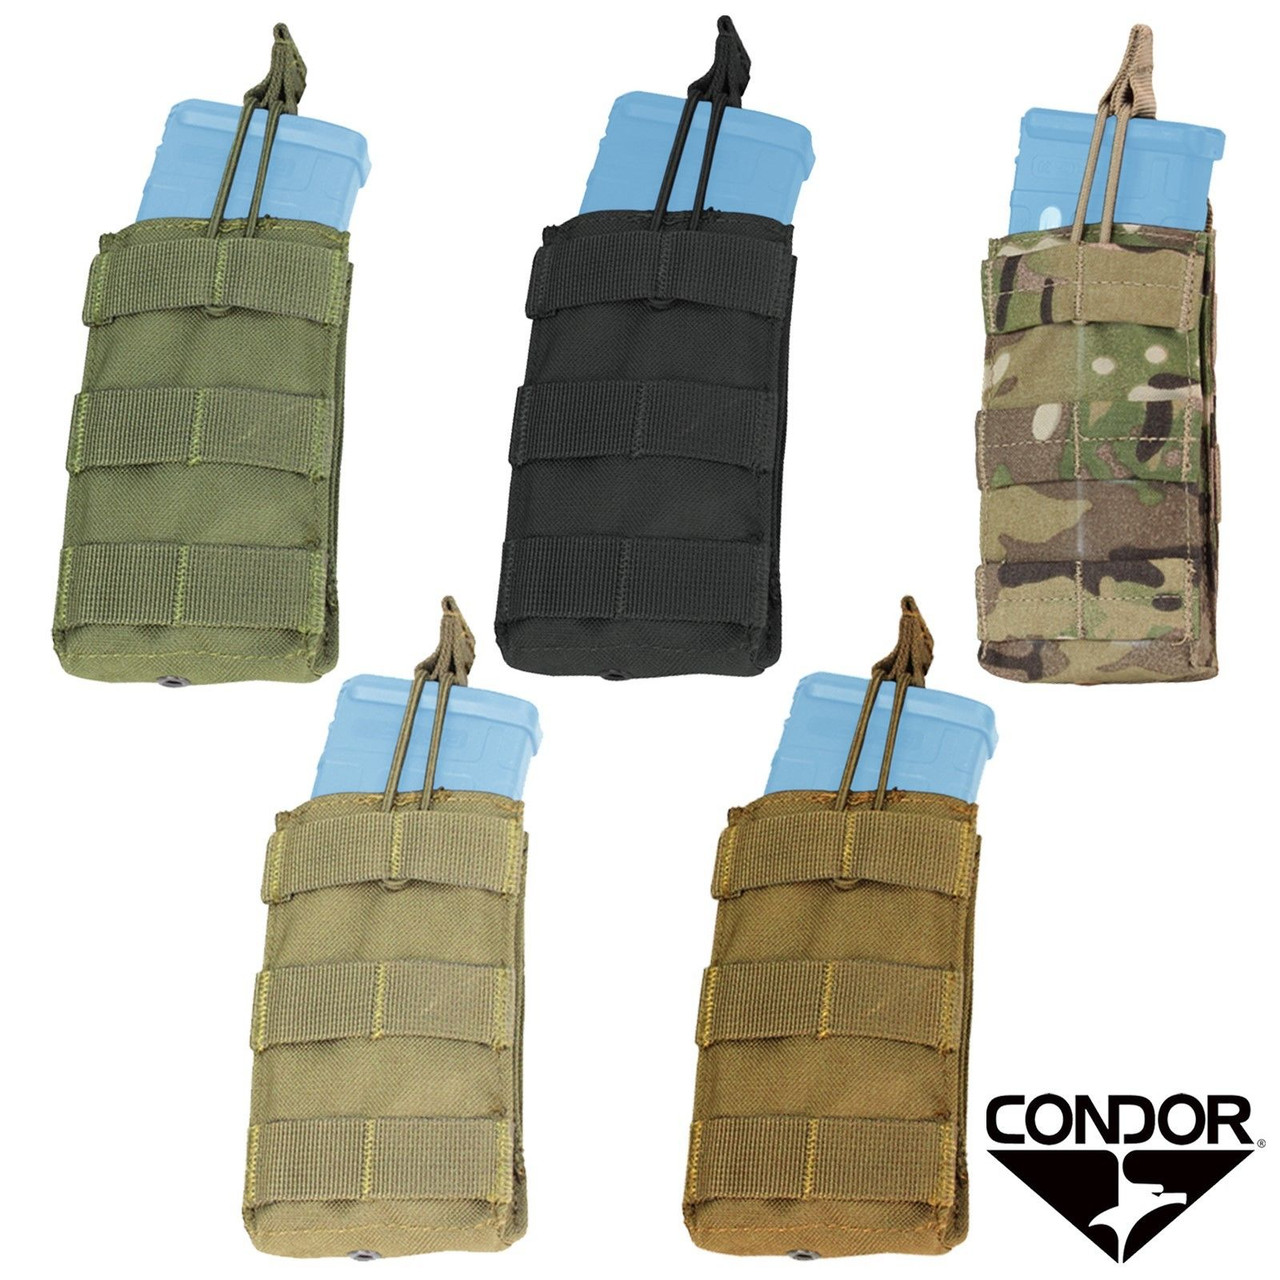 Condor MA19 Double Open Top 5.56 Mag Pouch Black Tactical Rifle Molle Pouch